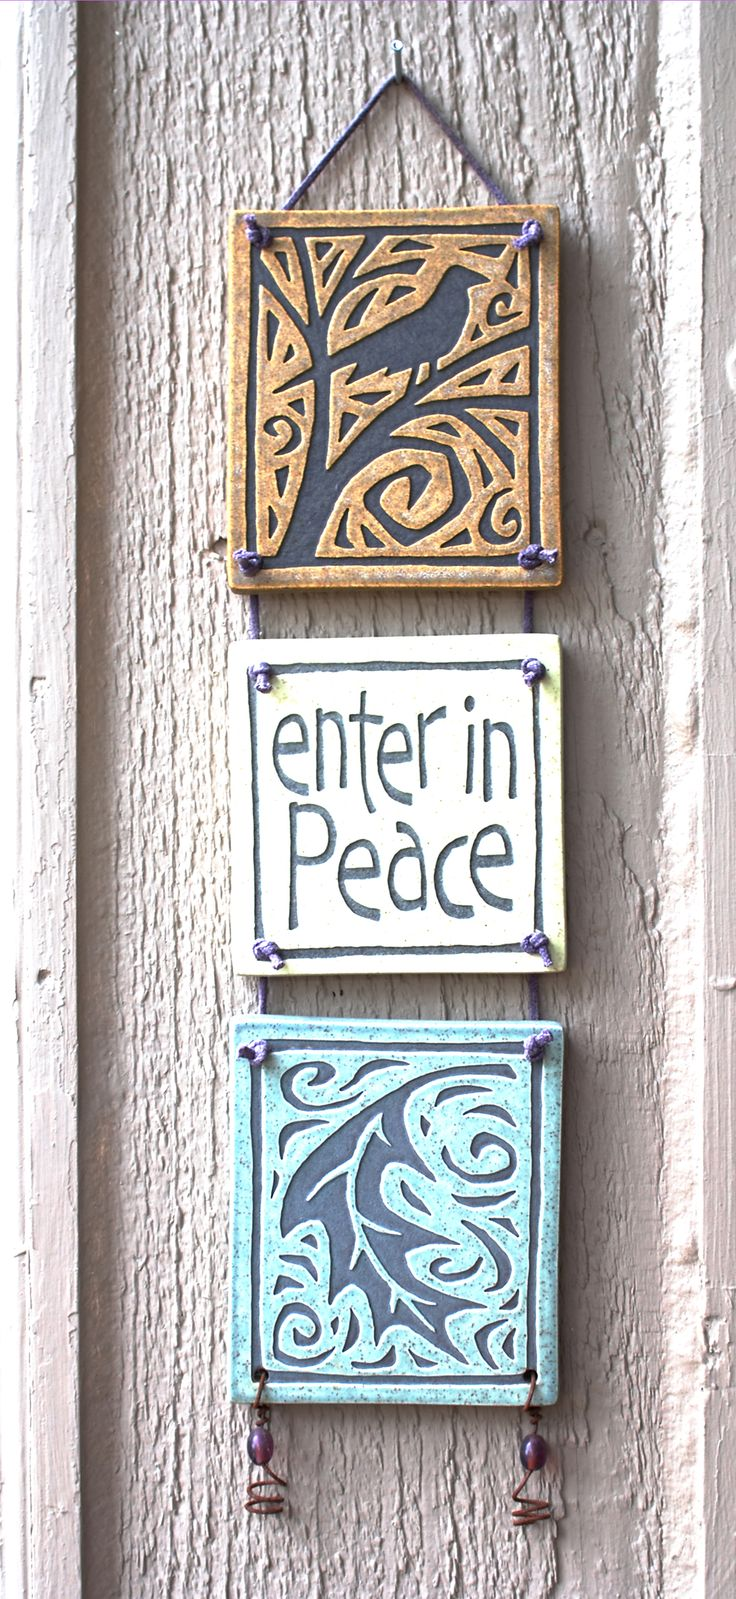 Good idea to hang house numbers, too!